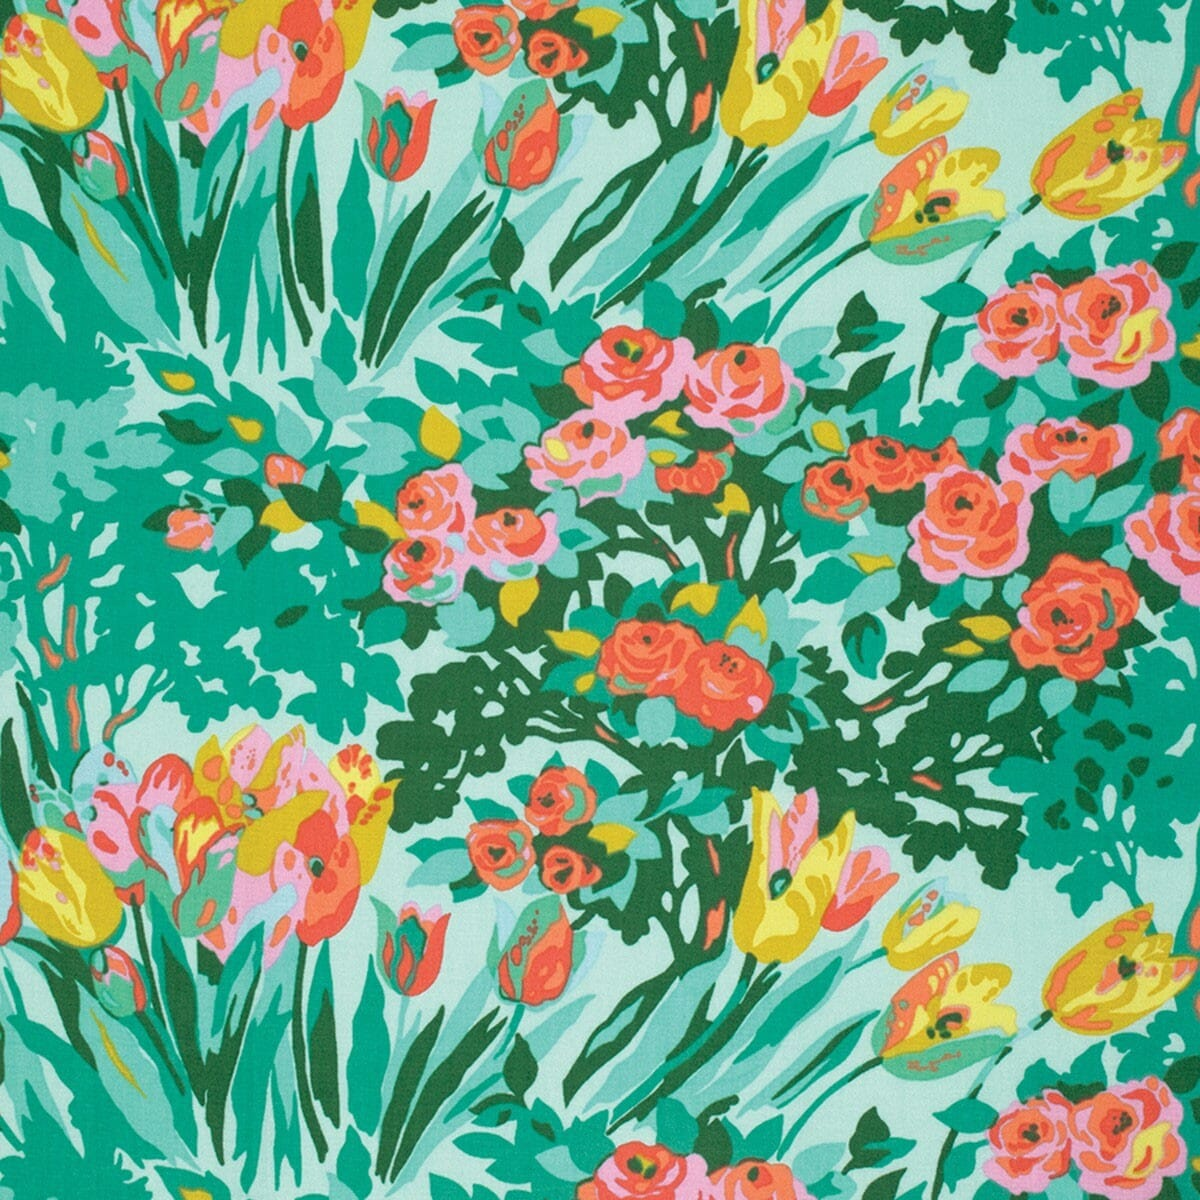 Amy Butler Violette Treasure Minty Meadow Blooms Cotton Fabric